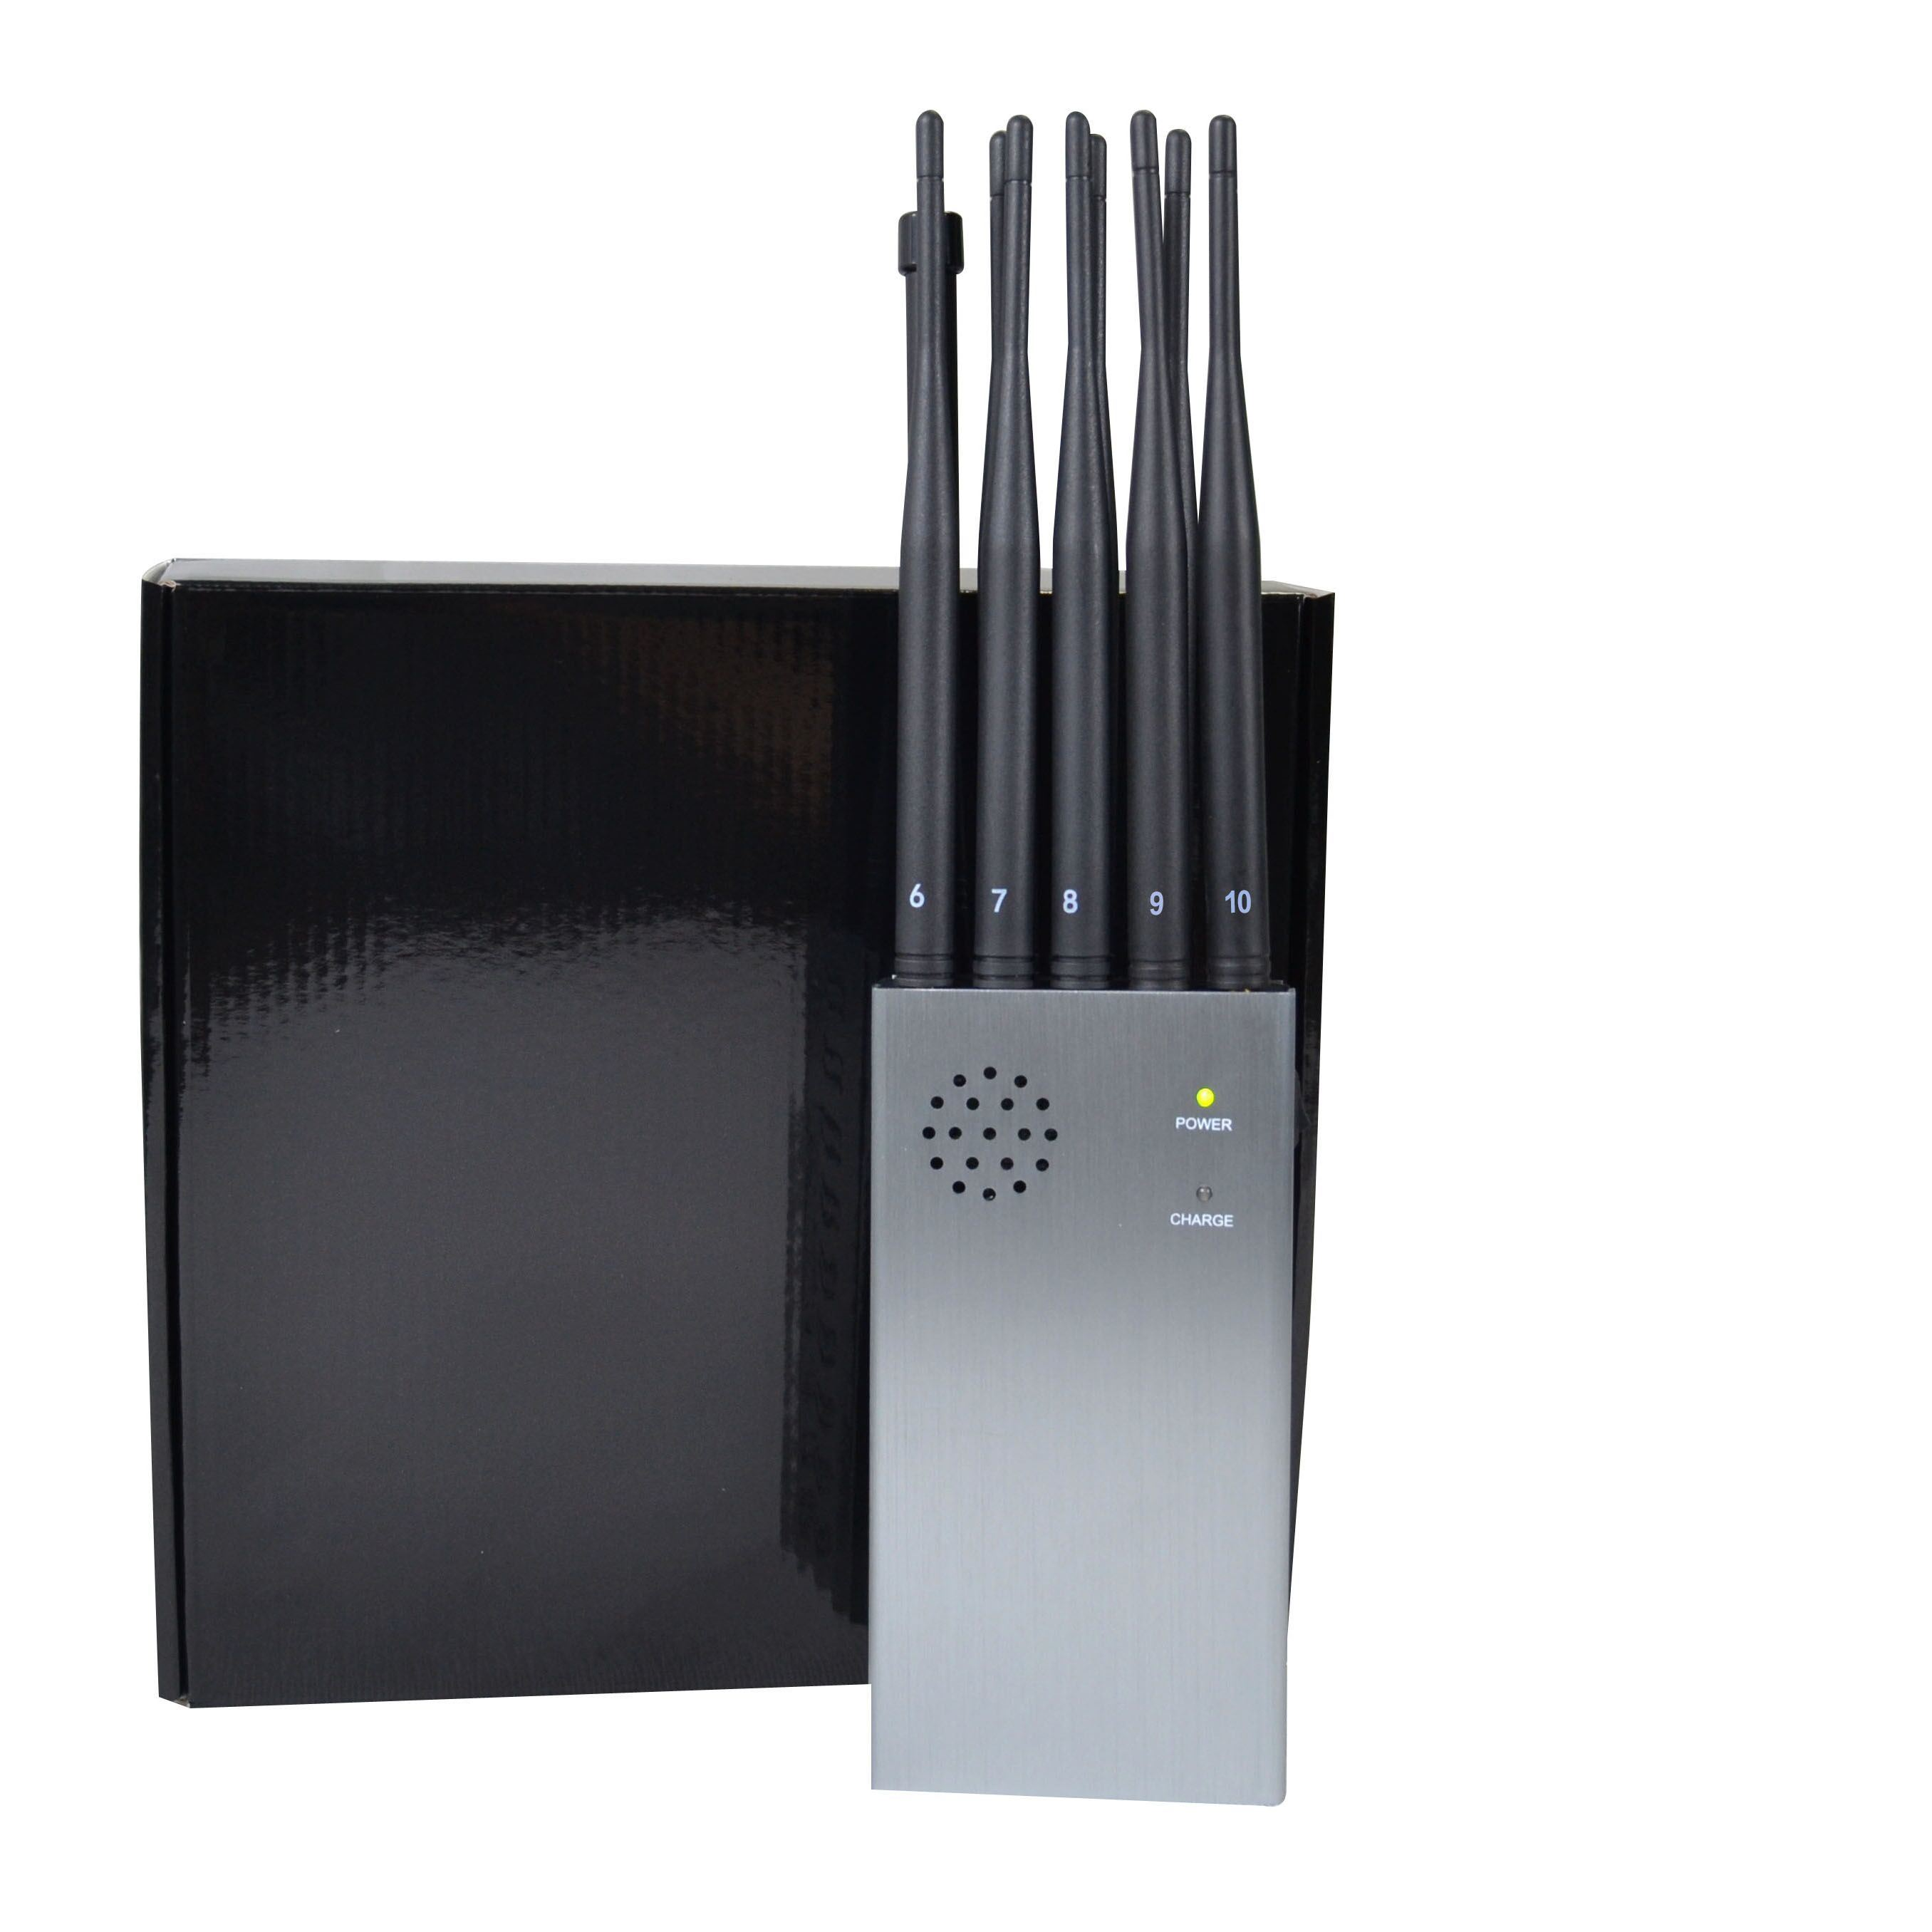 gps signal blocker jammer legal - China Handled Portable Jammer with 10 Antennas Newest Model Updated Version with 8000mA - China 8000mA Battery Jammer, Large Volume Power Signal Blocker